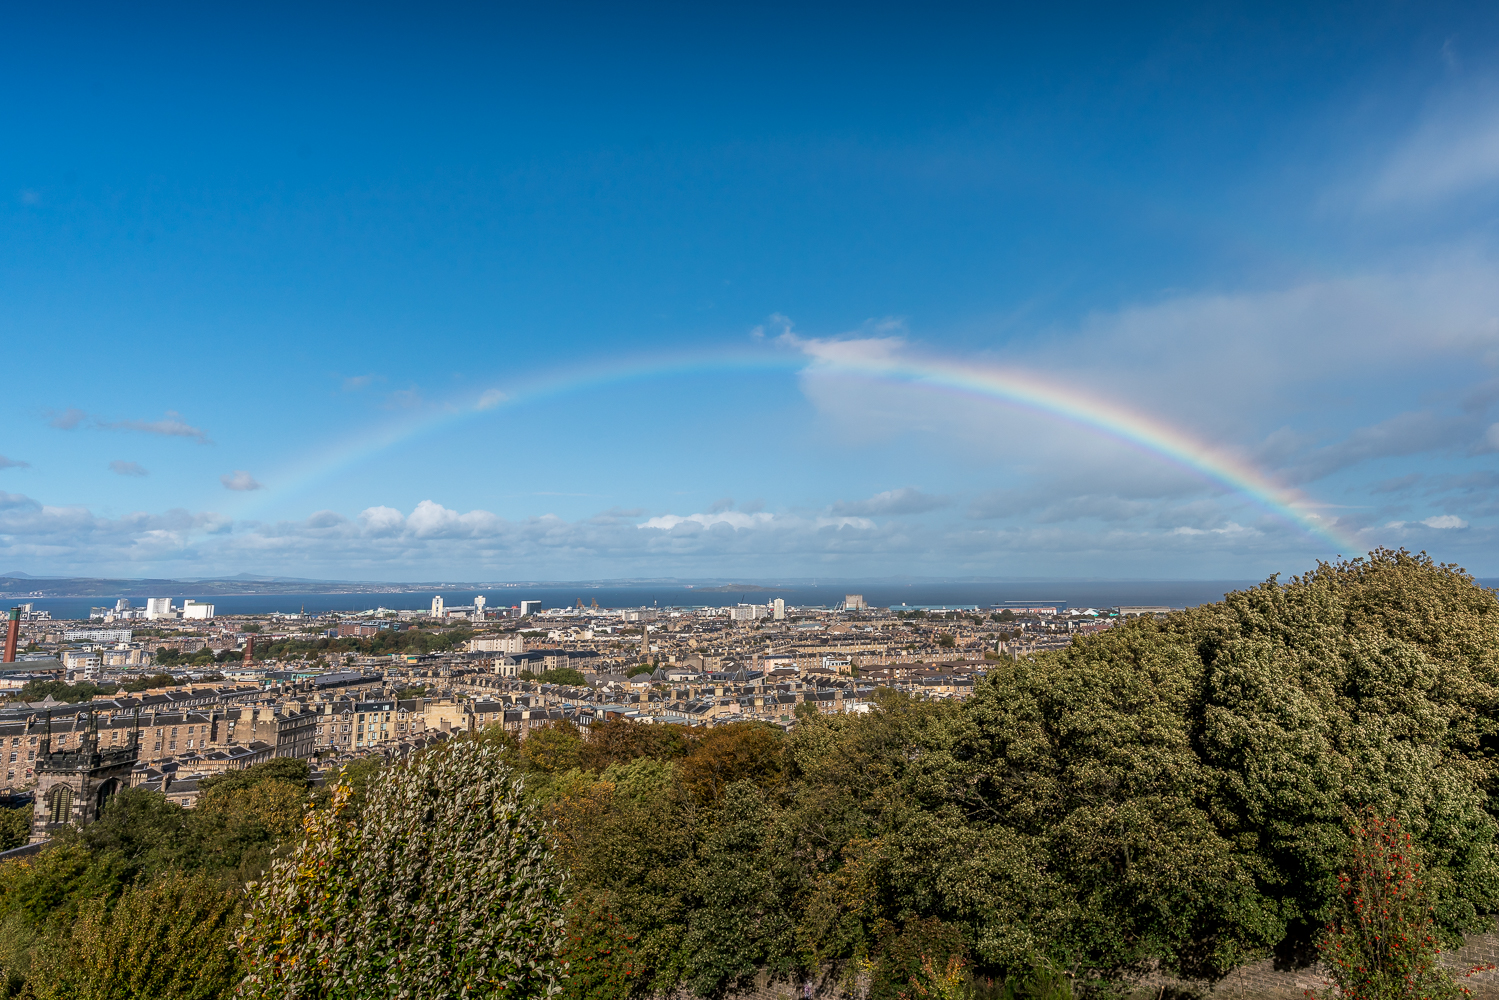 Another rainbow! View over the New Town area of Edinburgh.